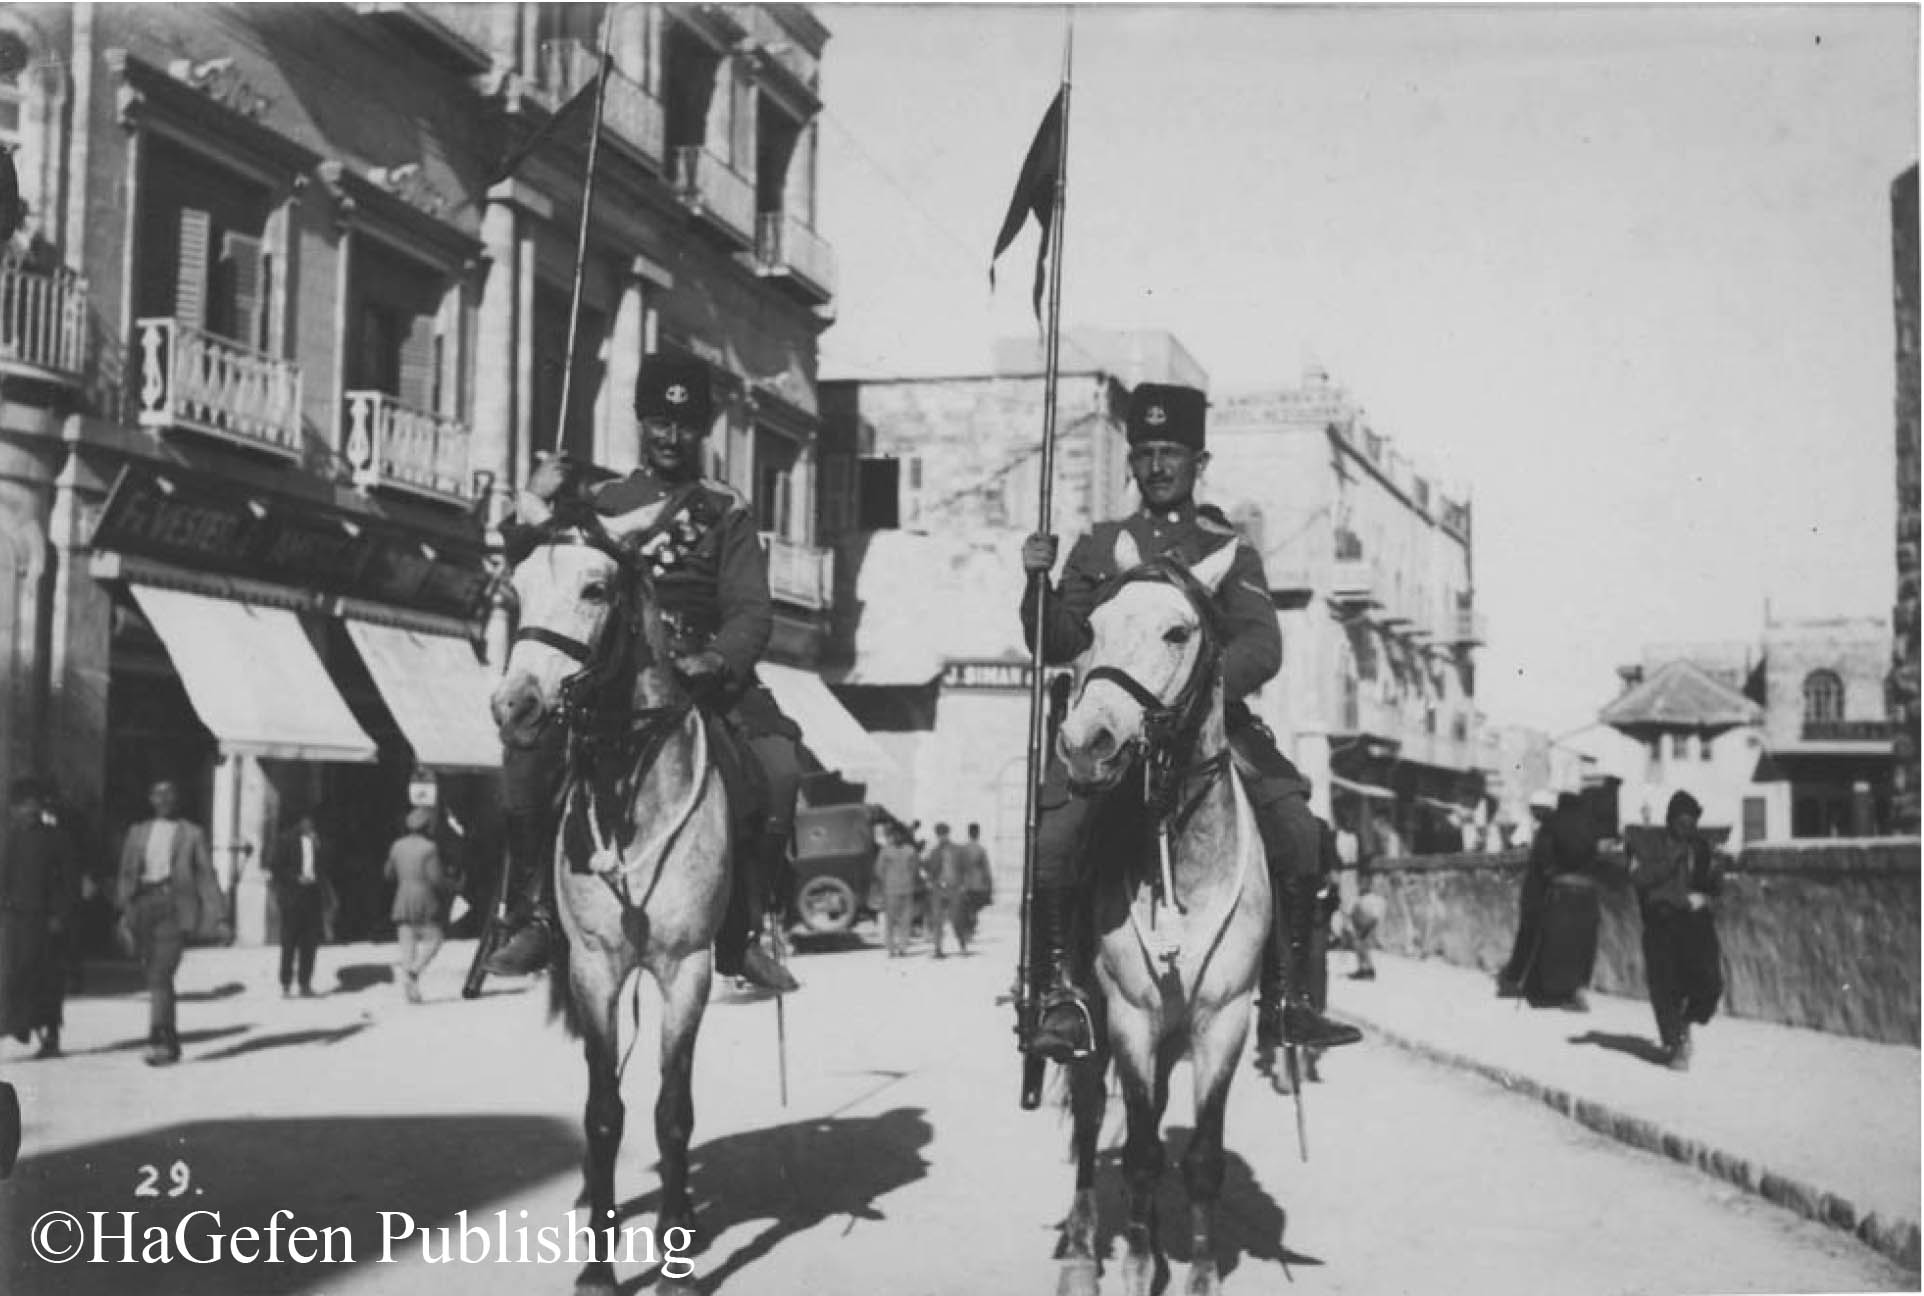 Jewish Mount Police near Jaffa Gate, 1925